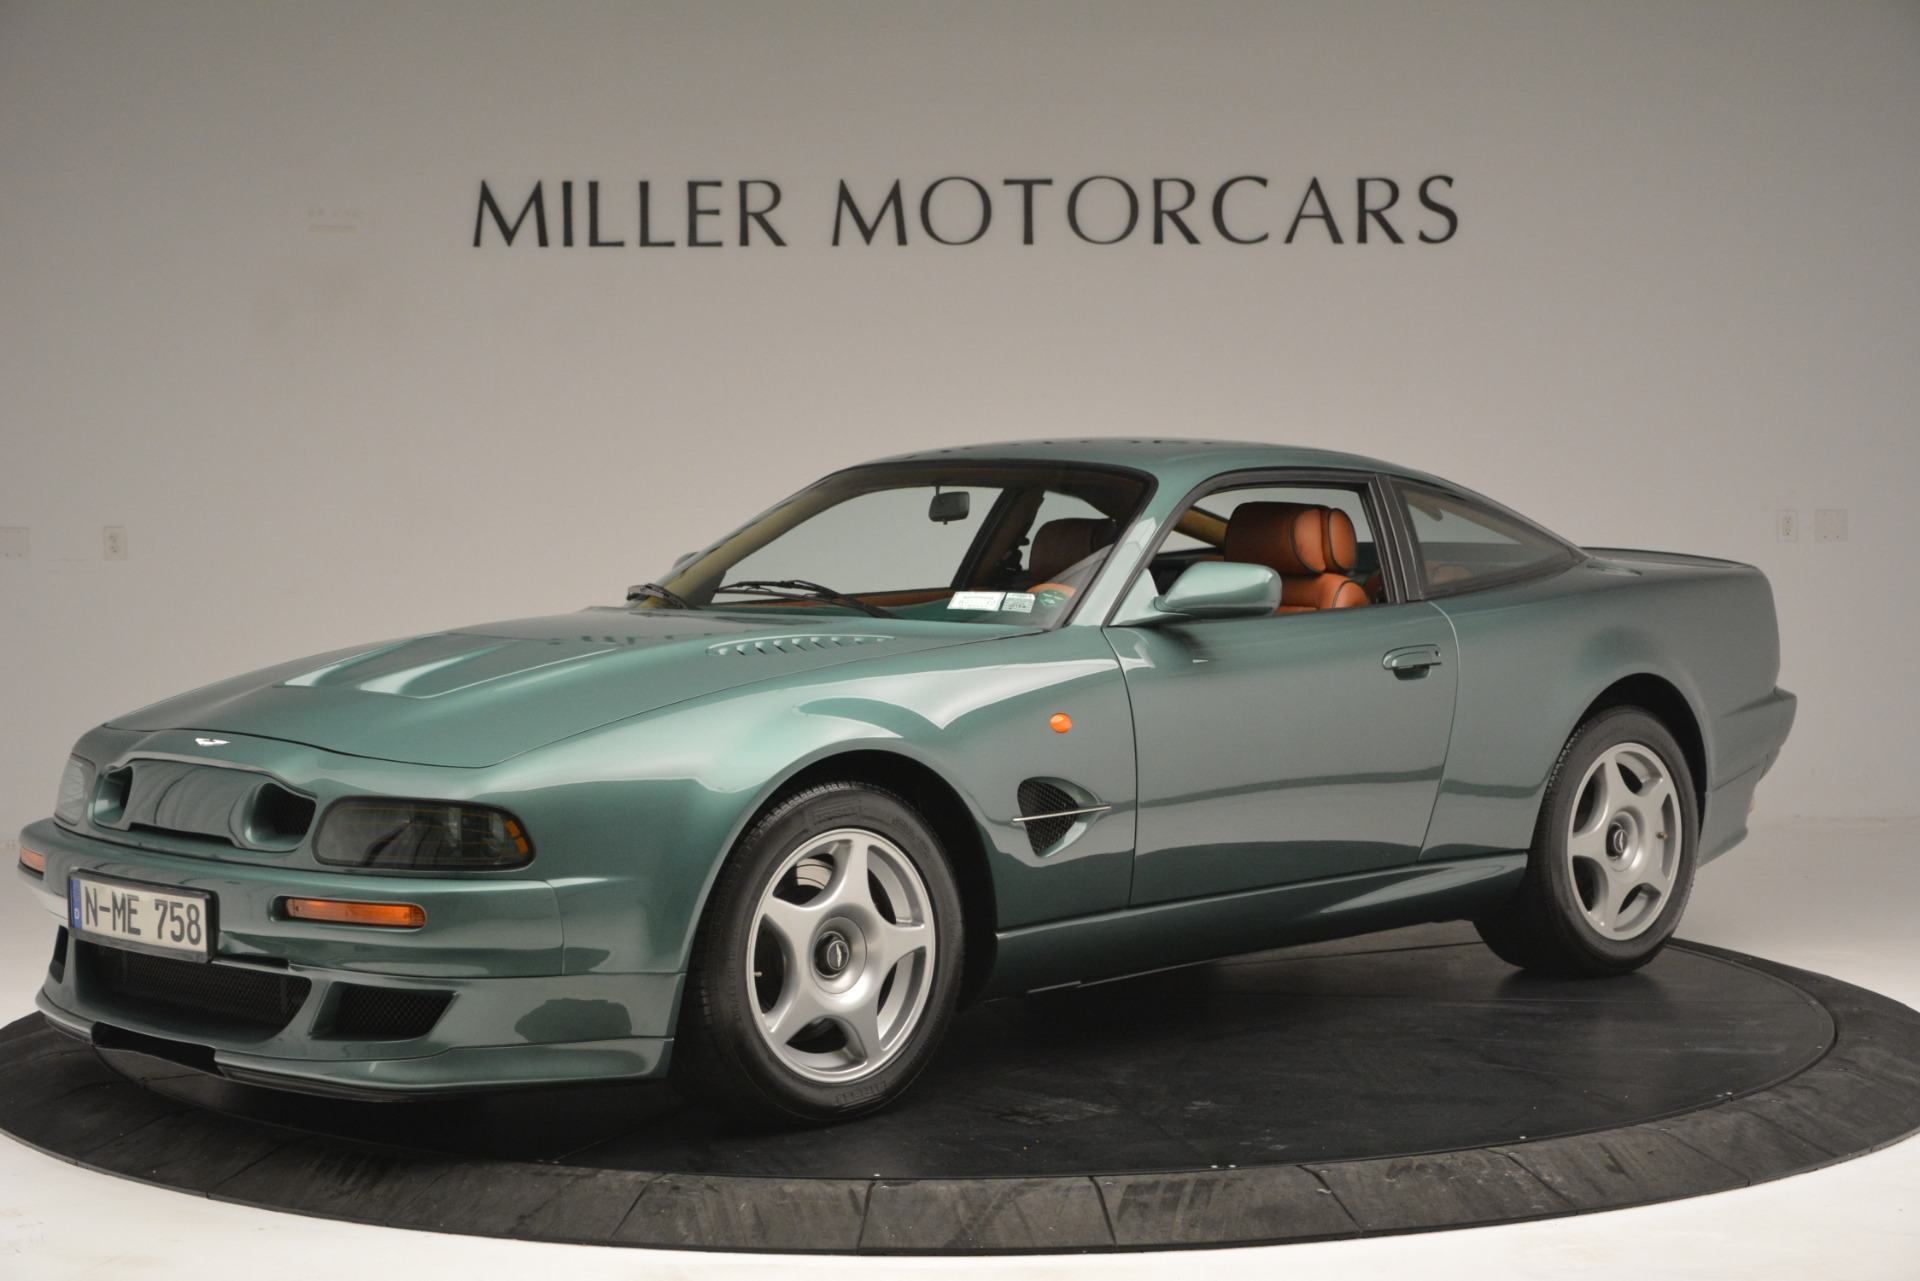 Used 1999 Aston Martin V8 Vantage Le Mans V600 Coupe for sale $550,000 at Alfa Romeo of Westport in Westport CT 06880 1